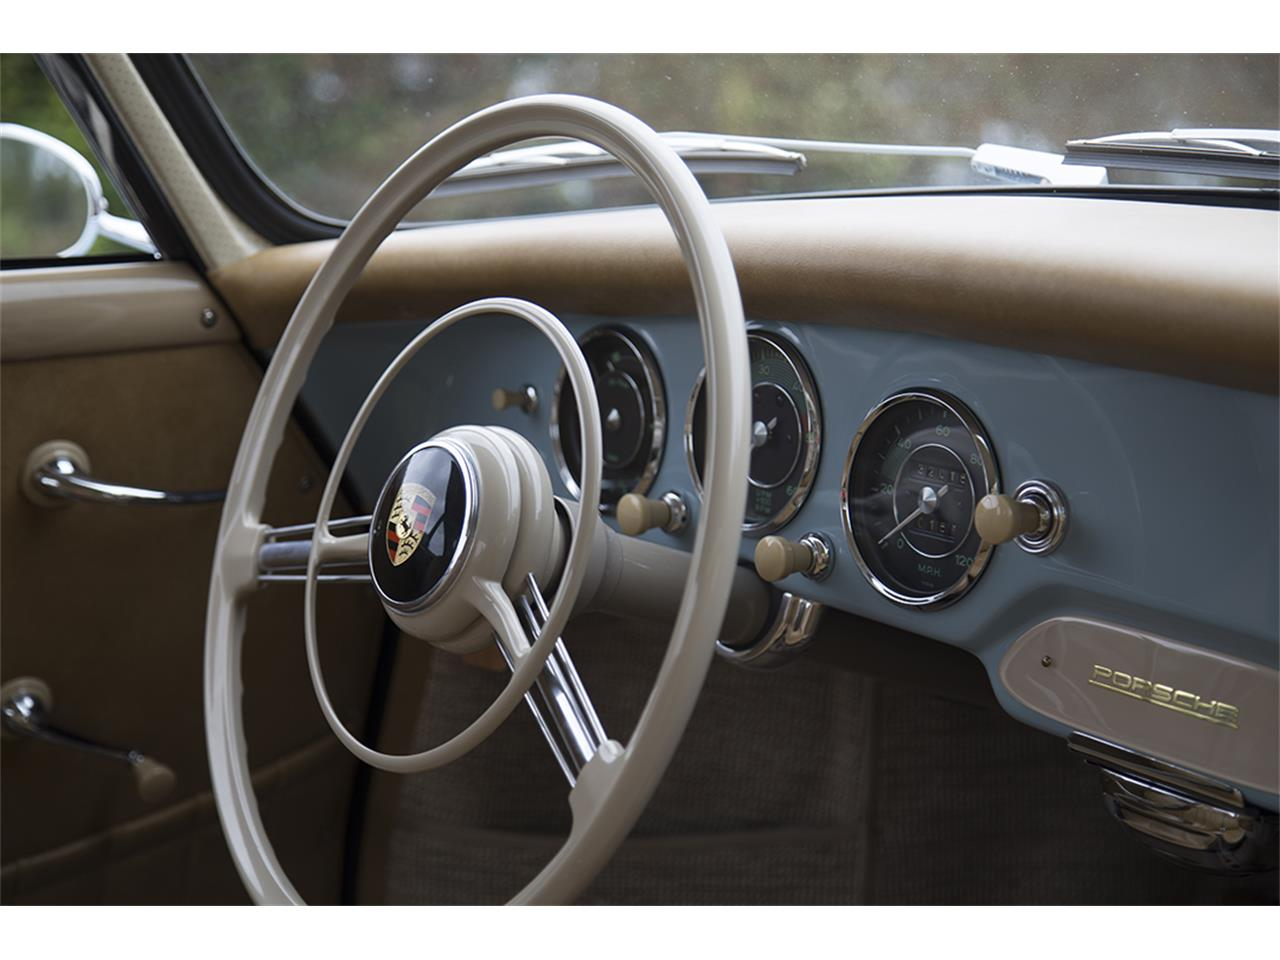 1959 Porsche 356A for sale in La Jolla, CA – photo 33